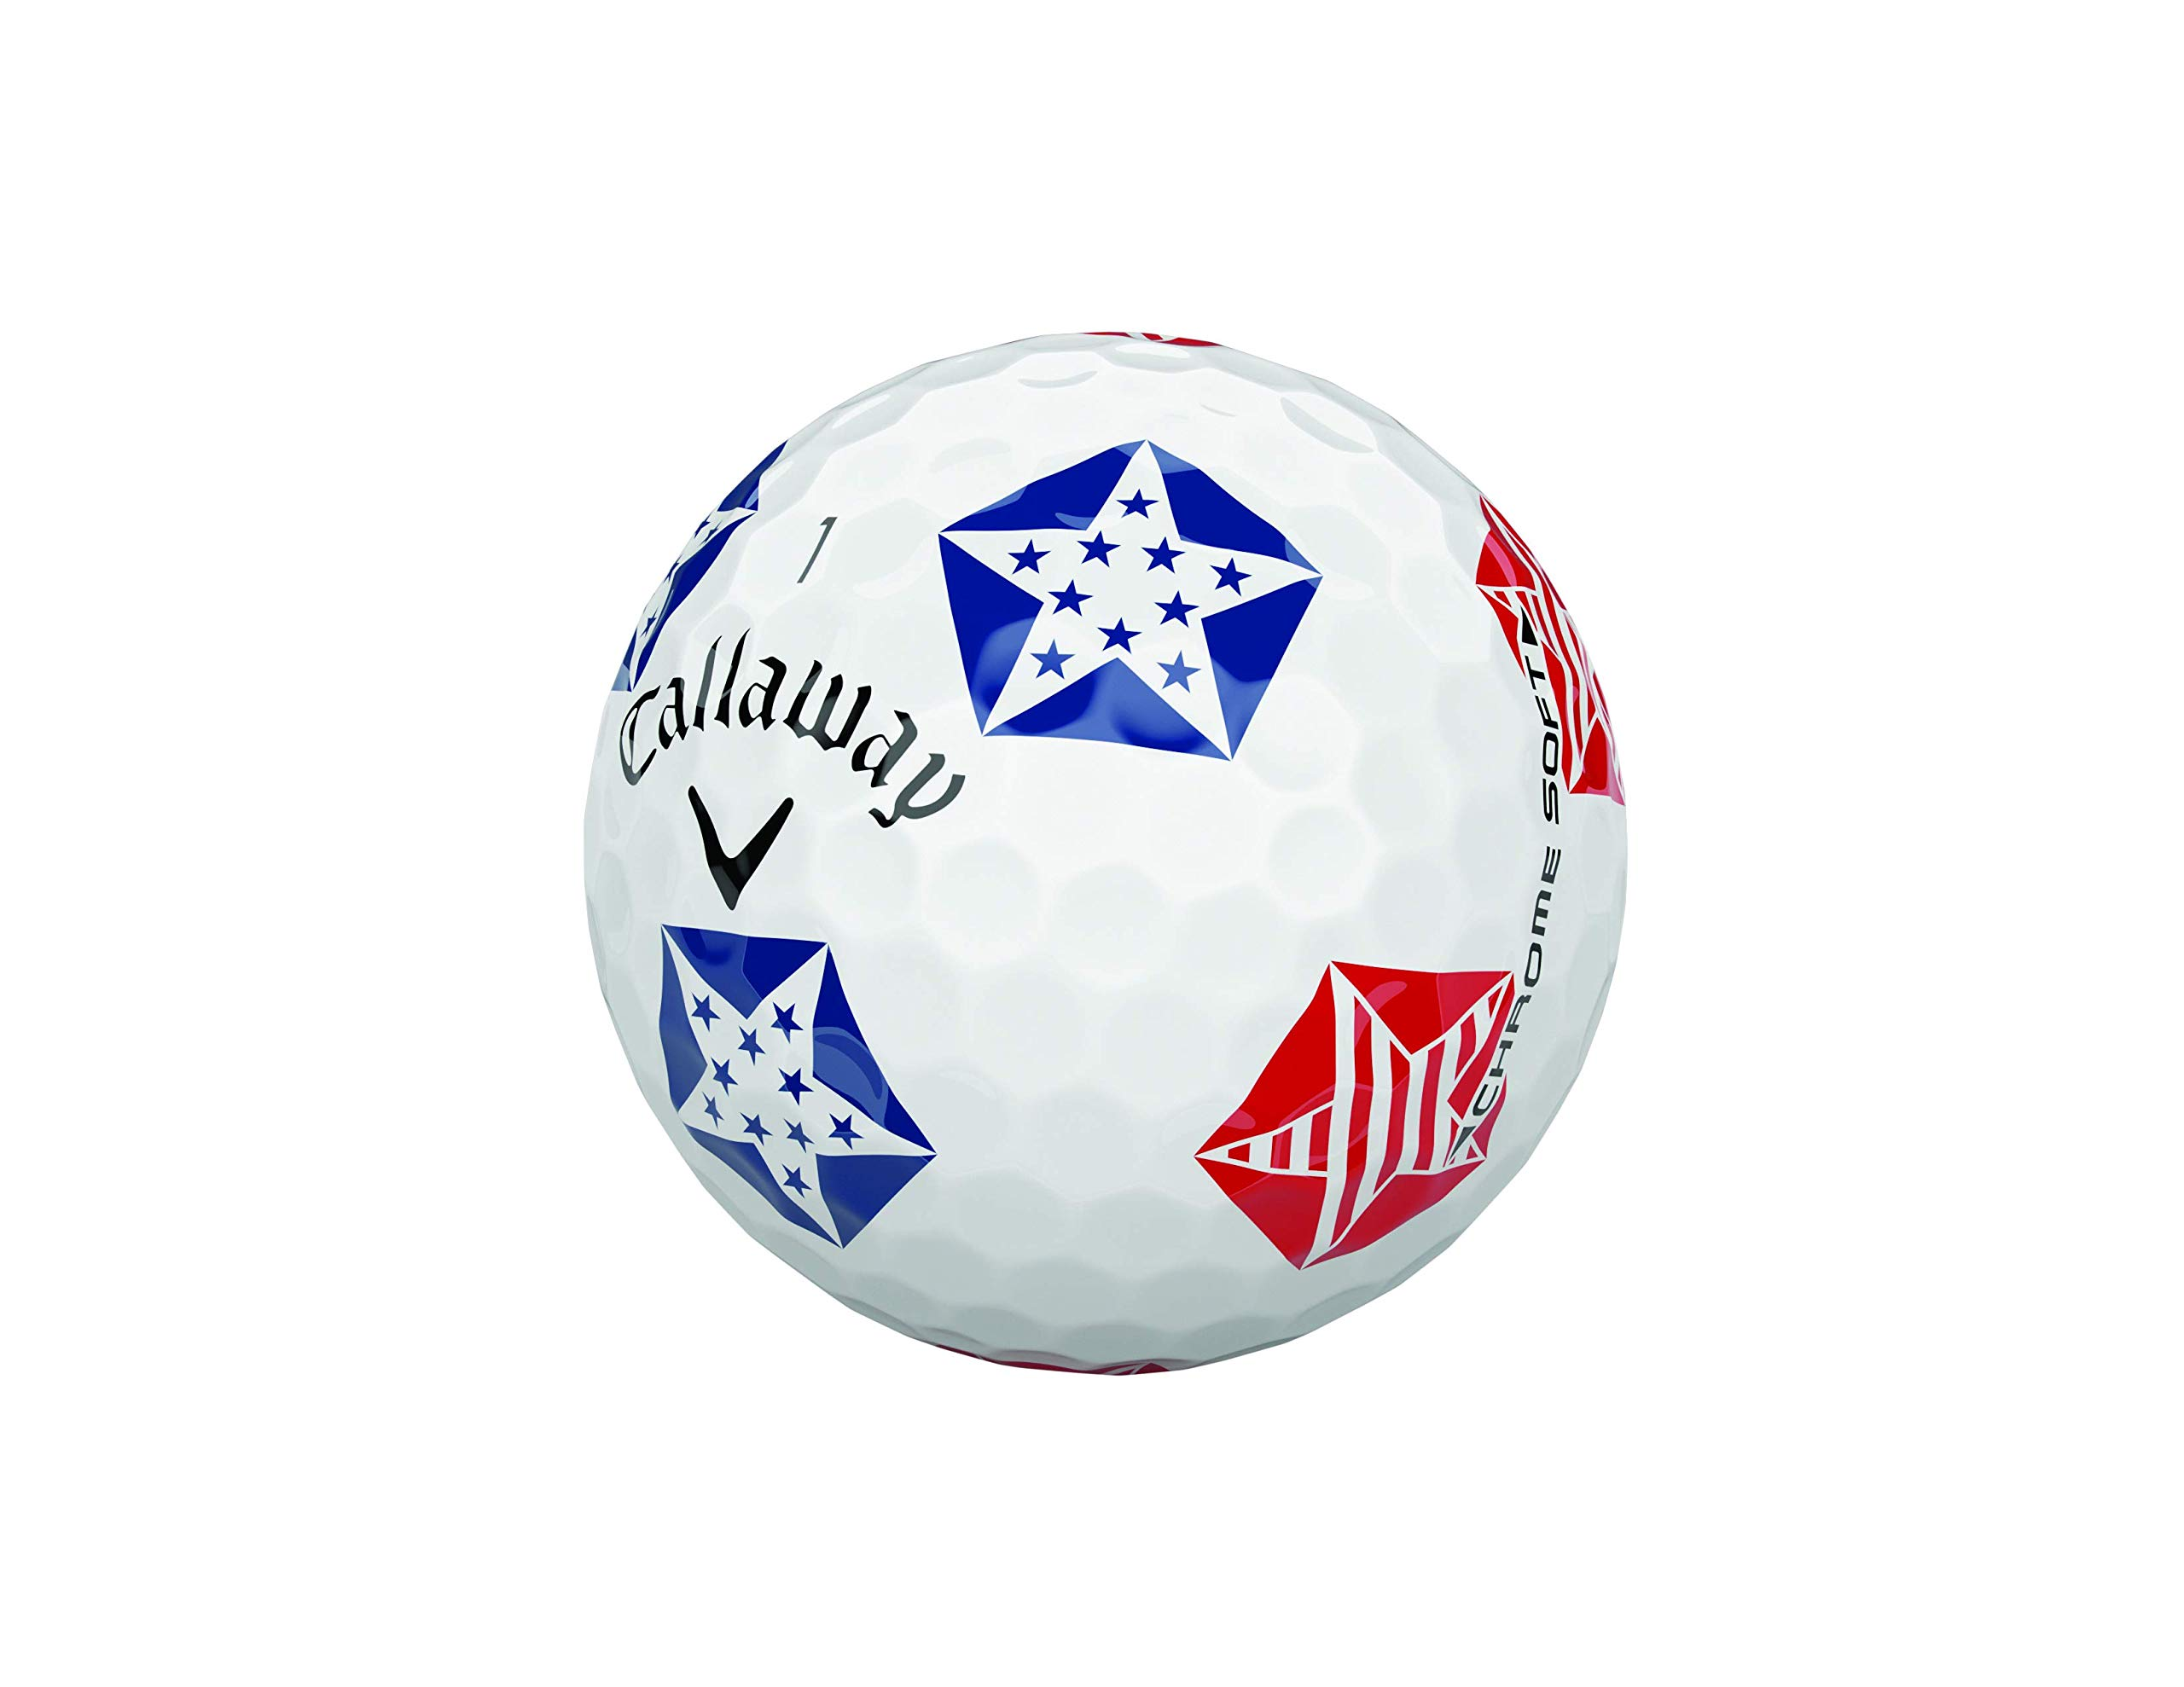 Callaway Golf Chrome Soft Truvis Golf Balls, (One Dozen), Stars and Stripes (Limited Edition) by Callaway (Image #5)